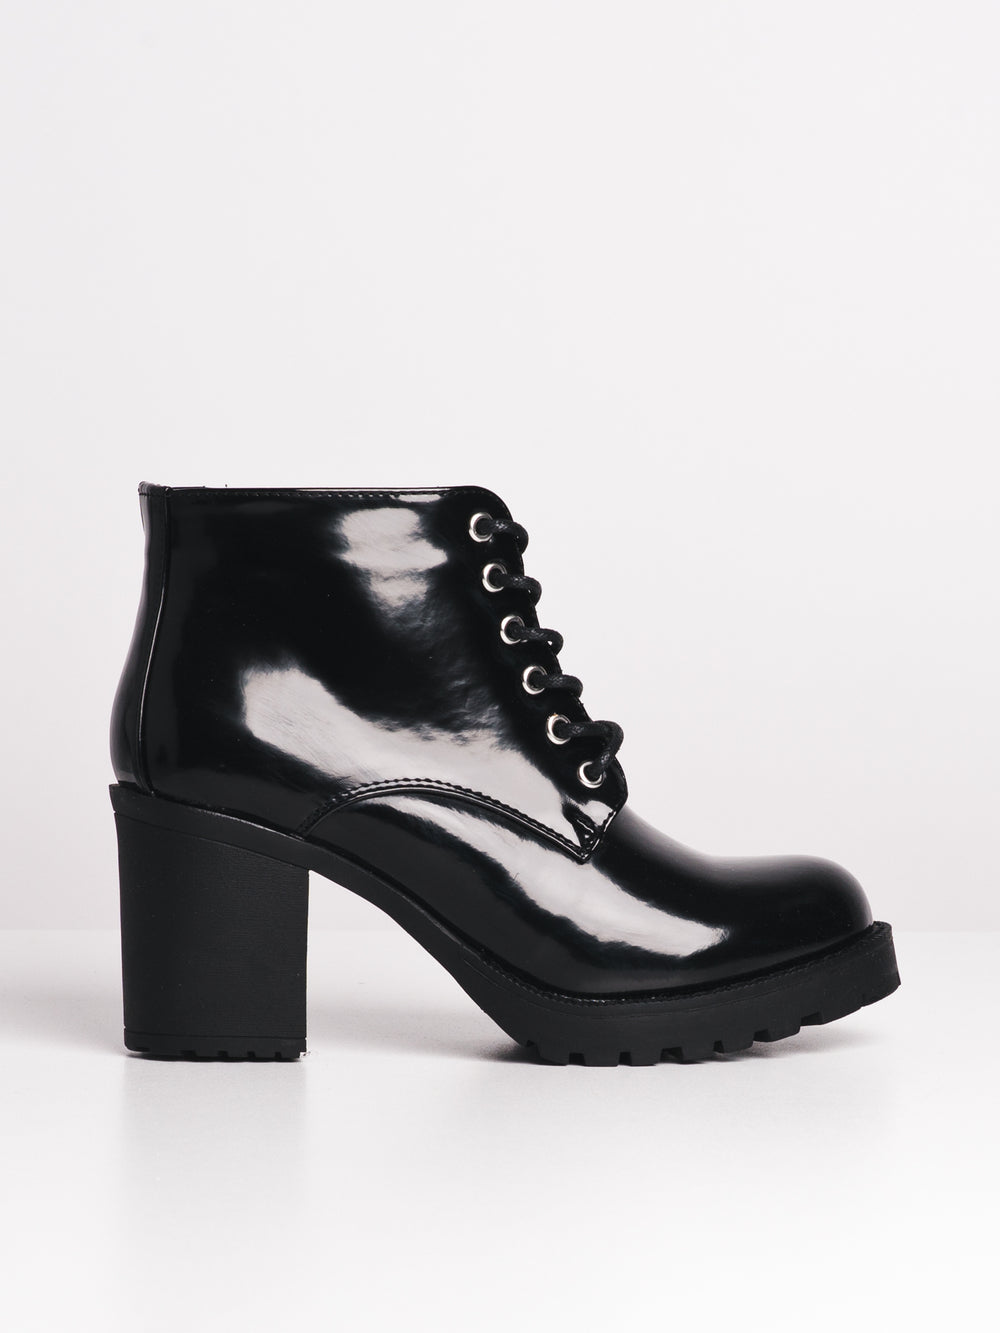 WOMENS GAIL - BLACK-D4